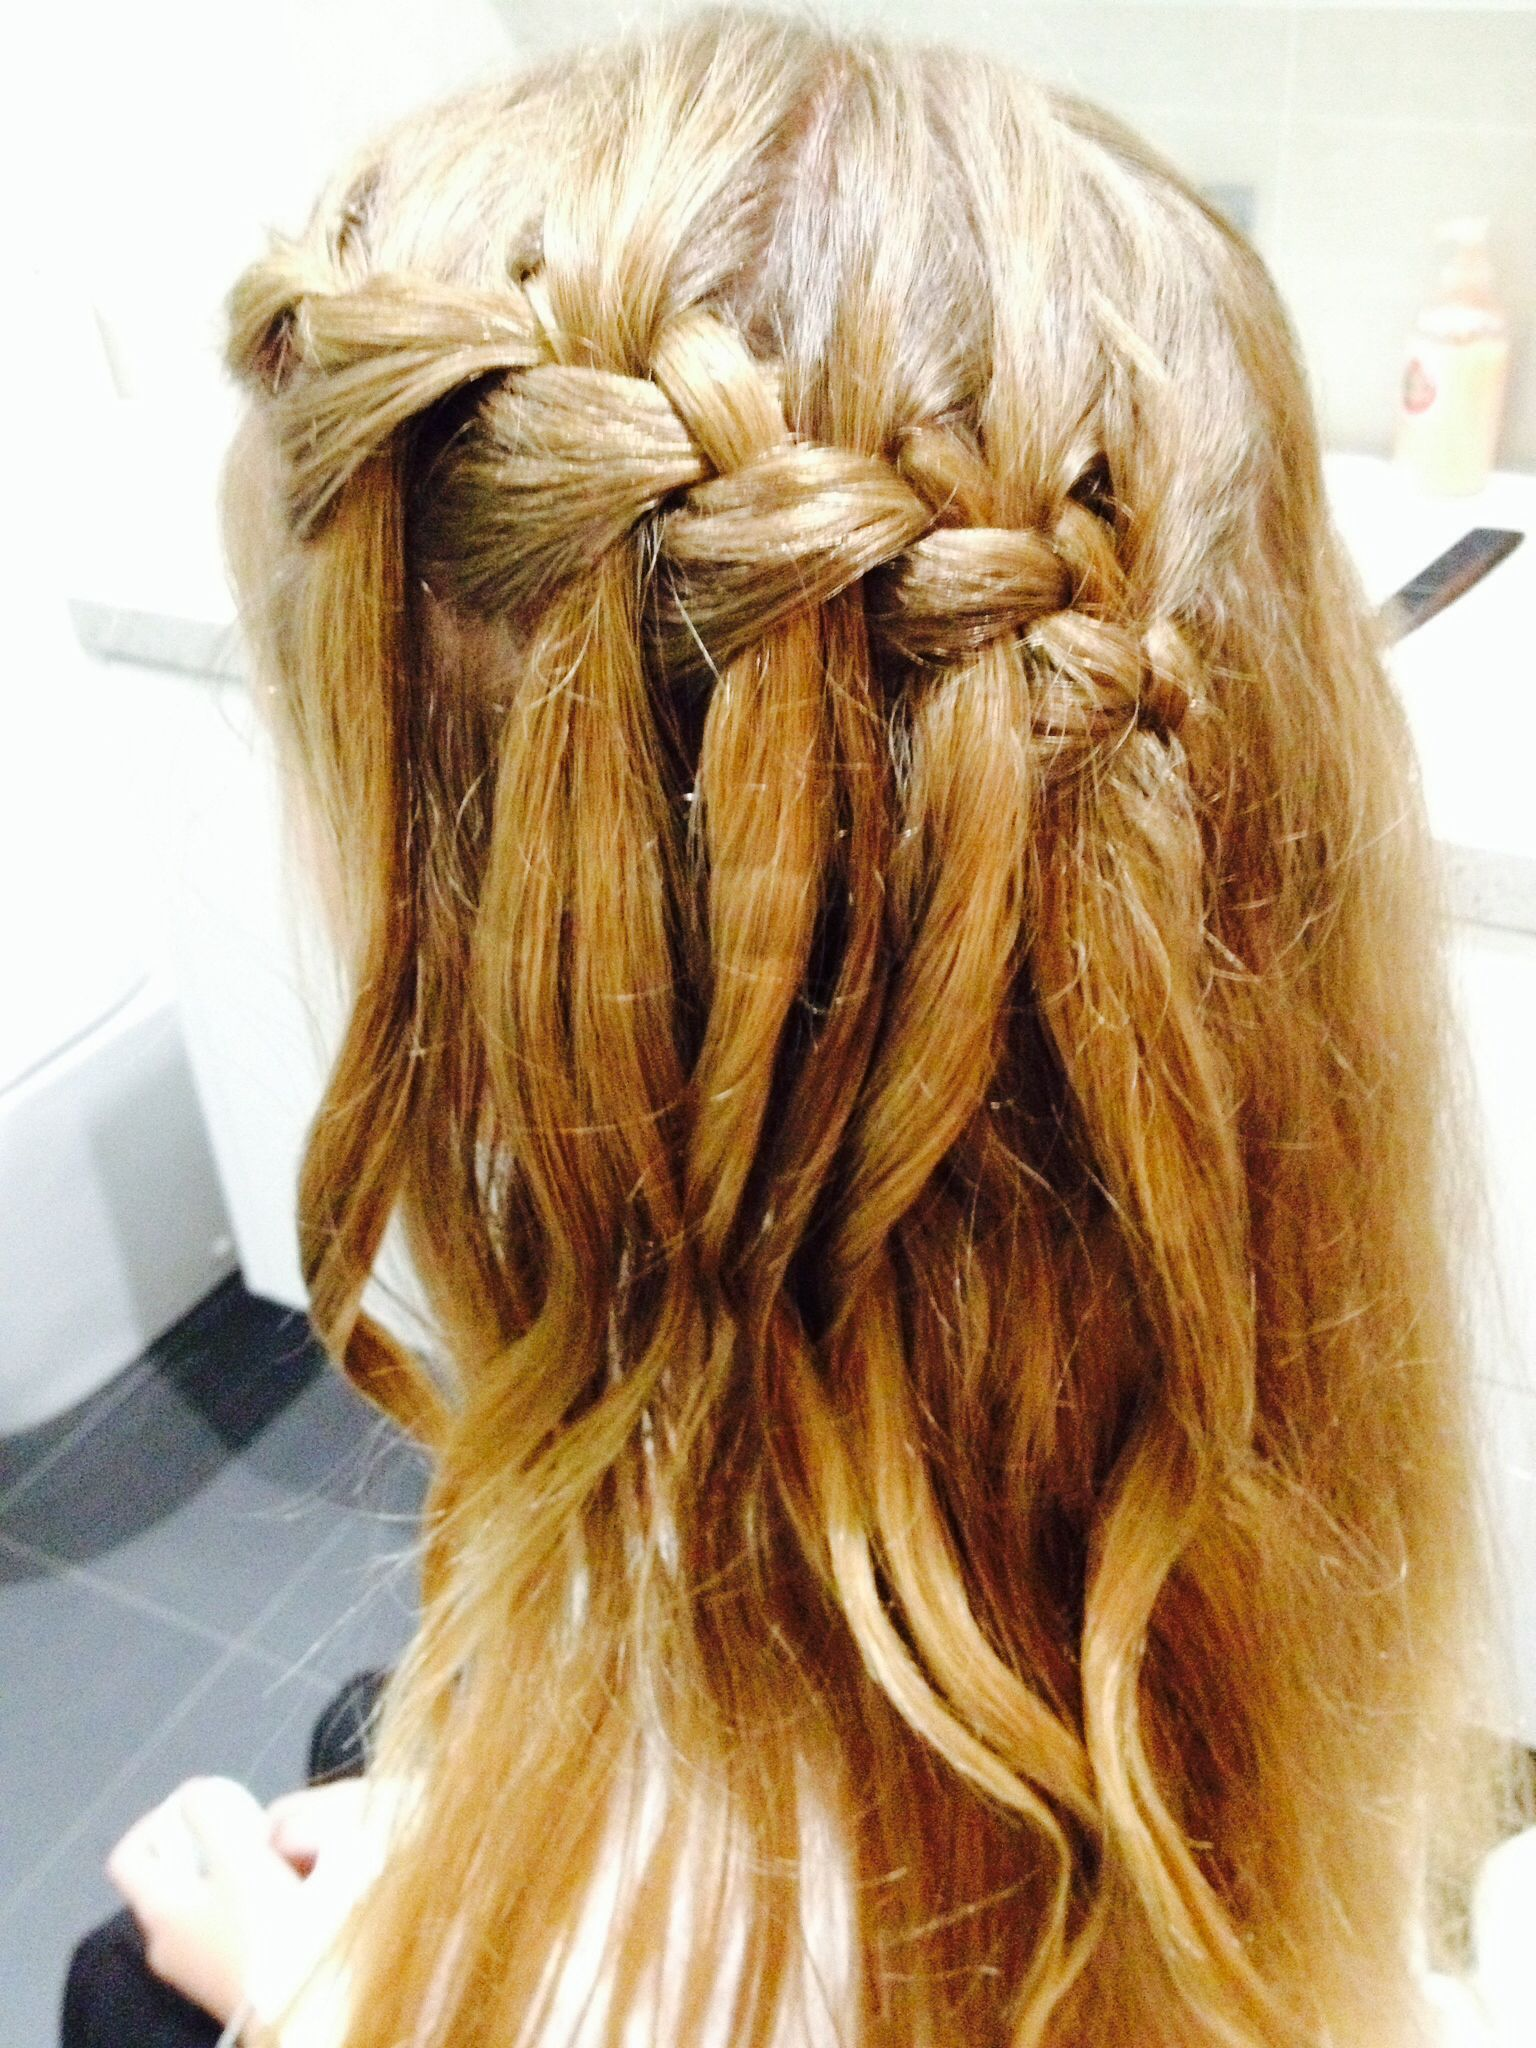 Waterfall braid with curled ends. | Hair | Pinterest